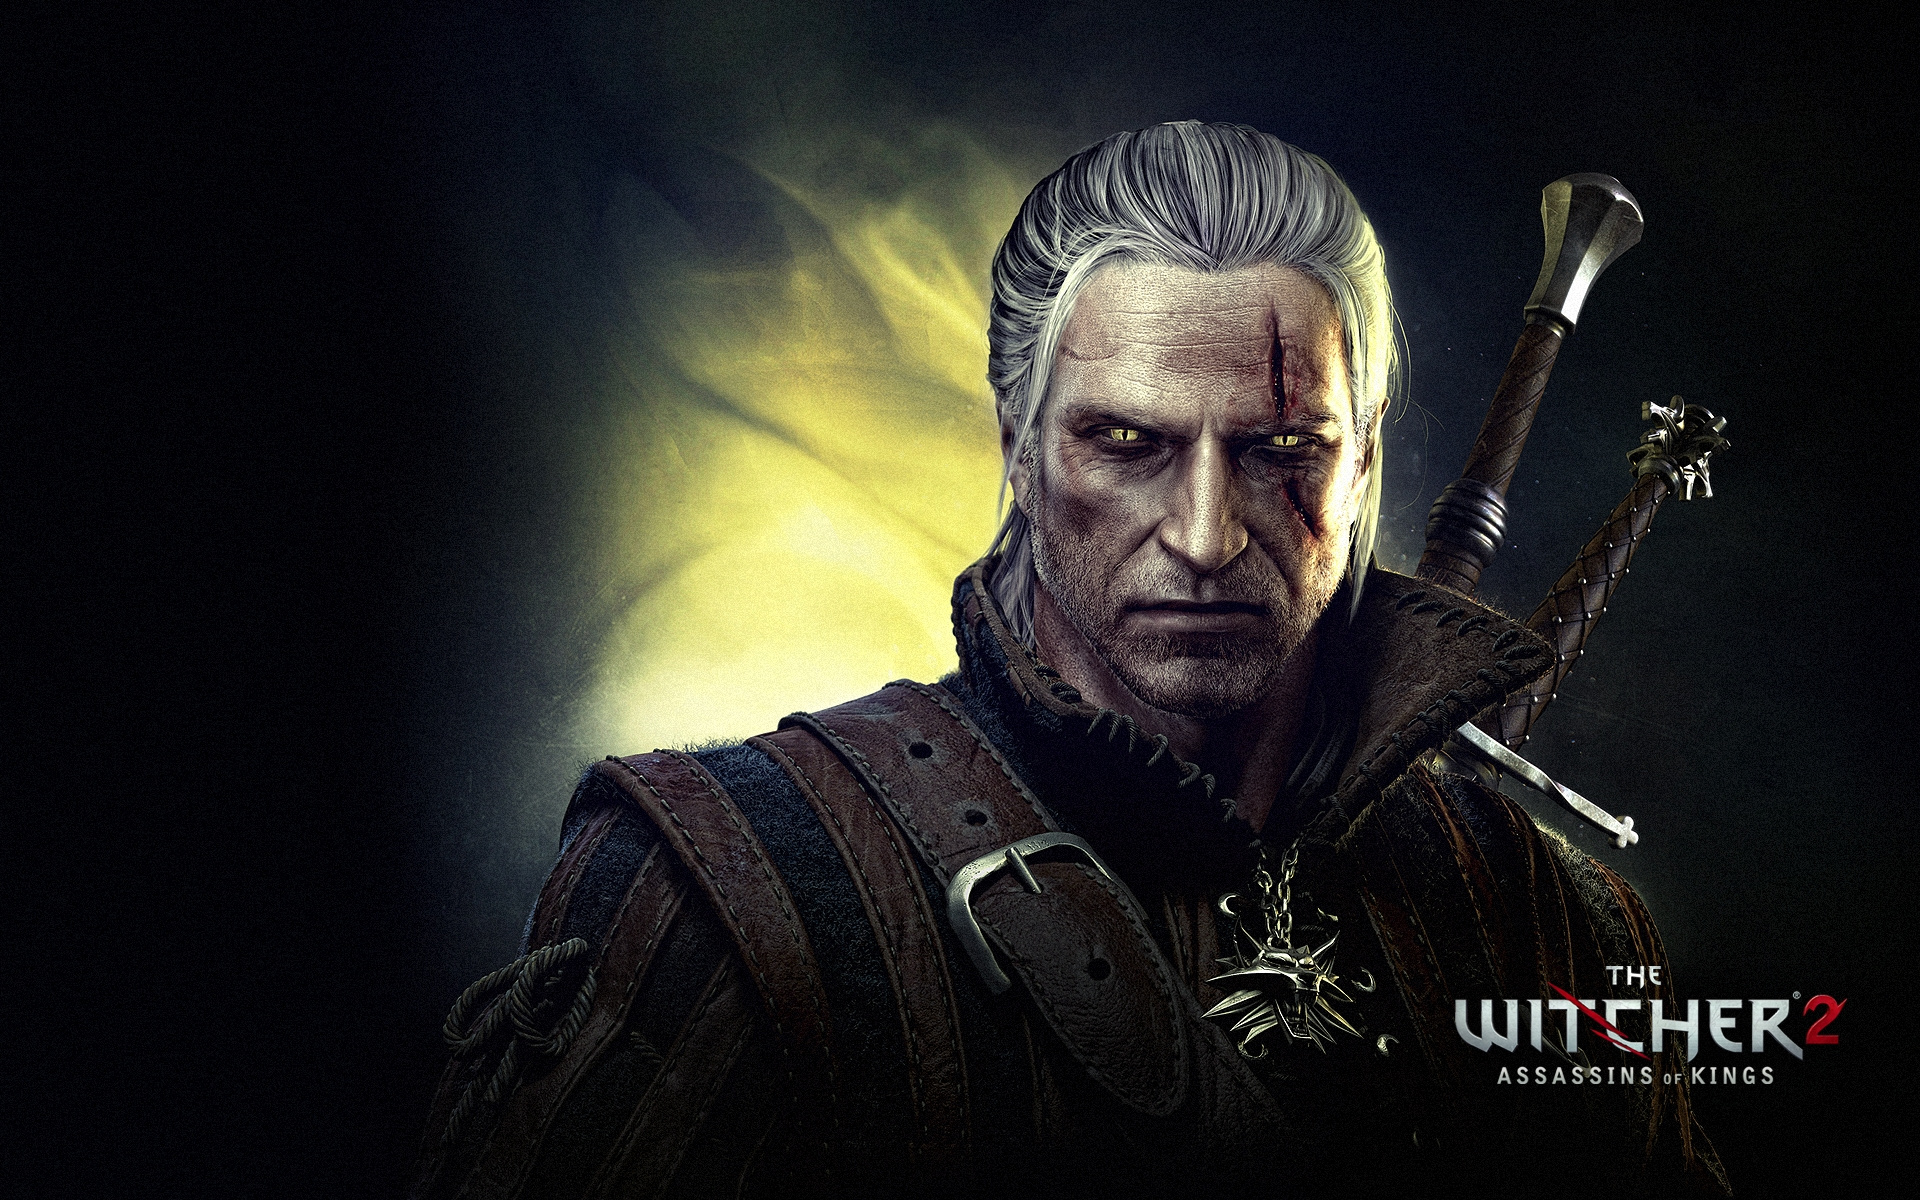 The Witcher 2 wallpaper 1